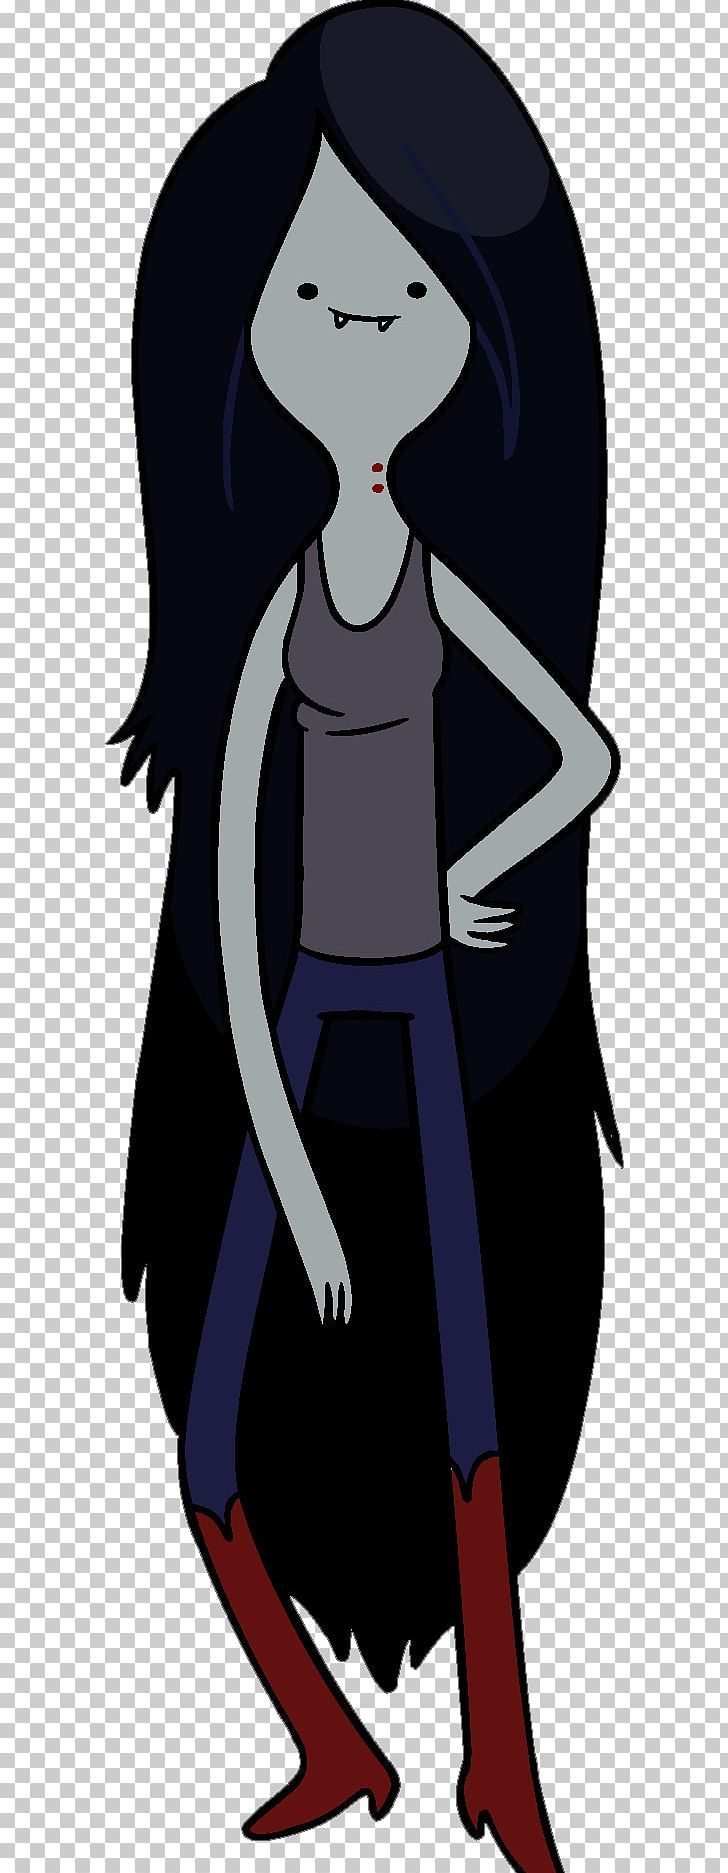 Marceline The Vampire Queen Princess Bubblegum Ice King Finn The Human Png Adventure Time Ant Marceline The Vampire Queen Marceline Adventure Time Marceline